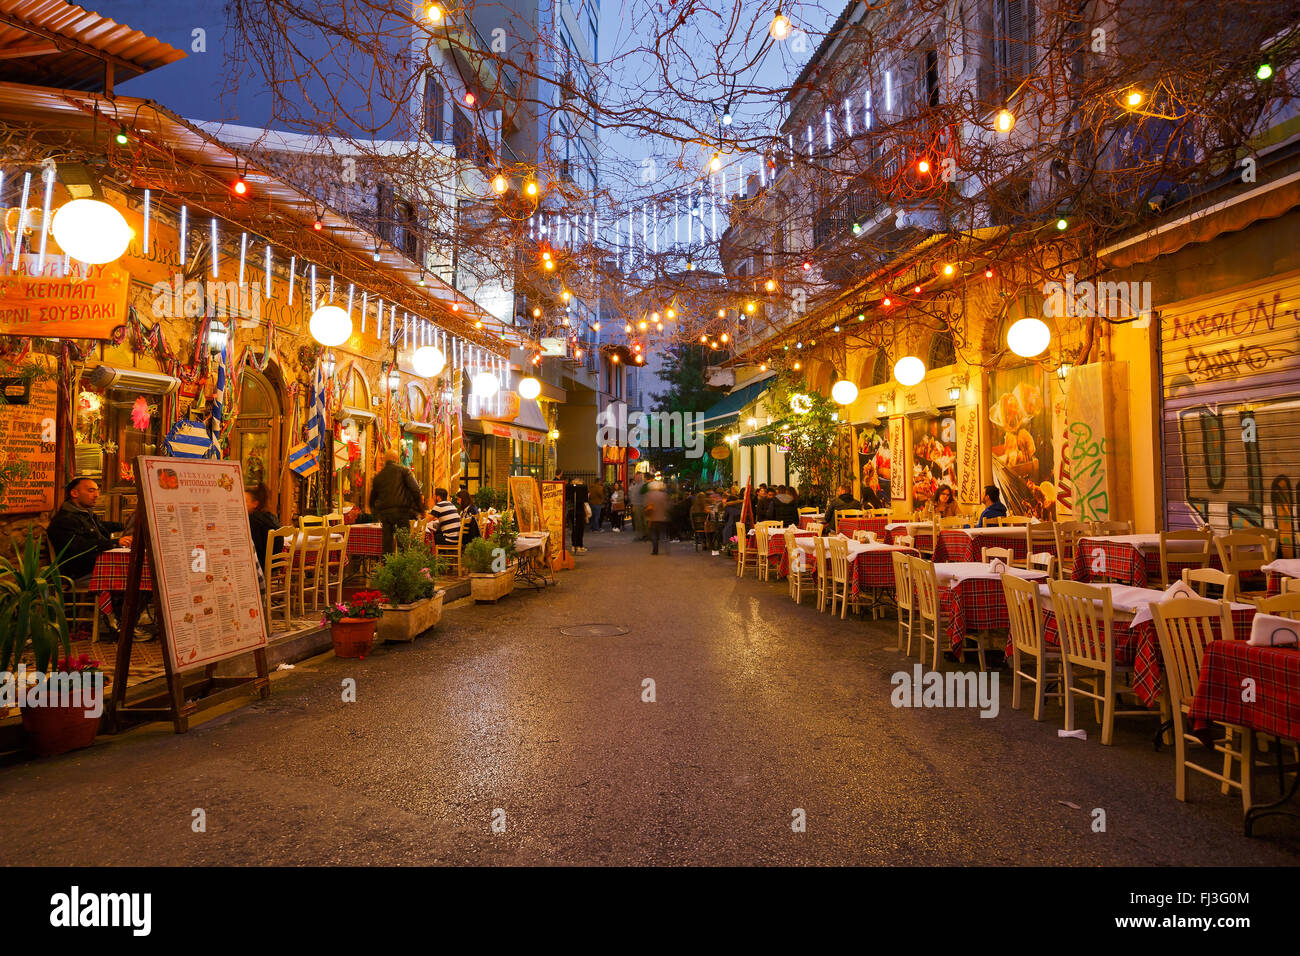 Restaurants and coffee shops in Psirri neighborhood near Heroes' square, Athens. - Stock Image